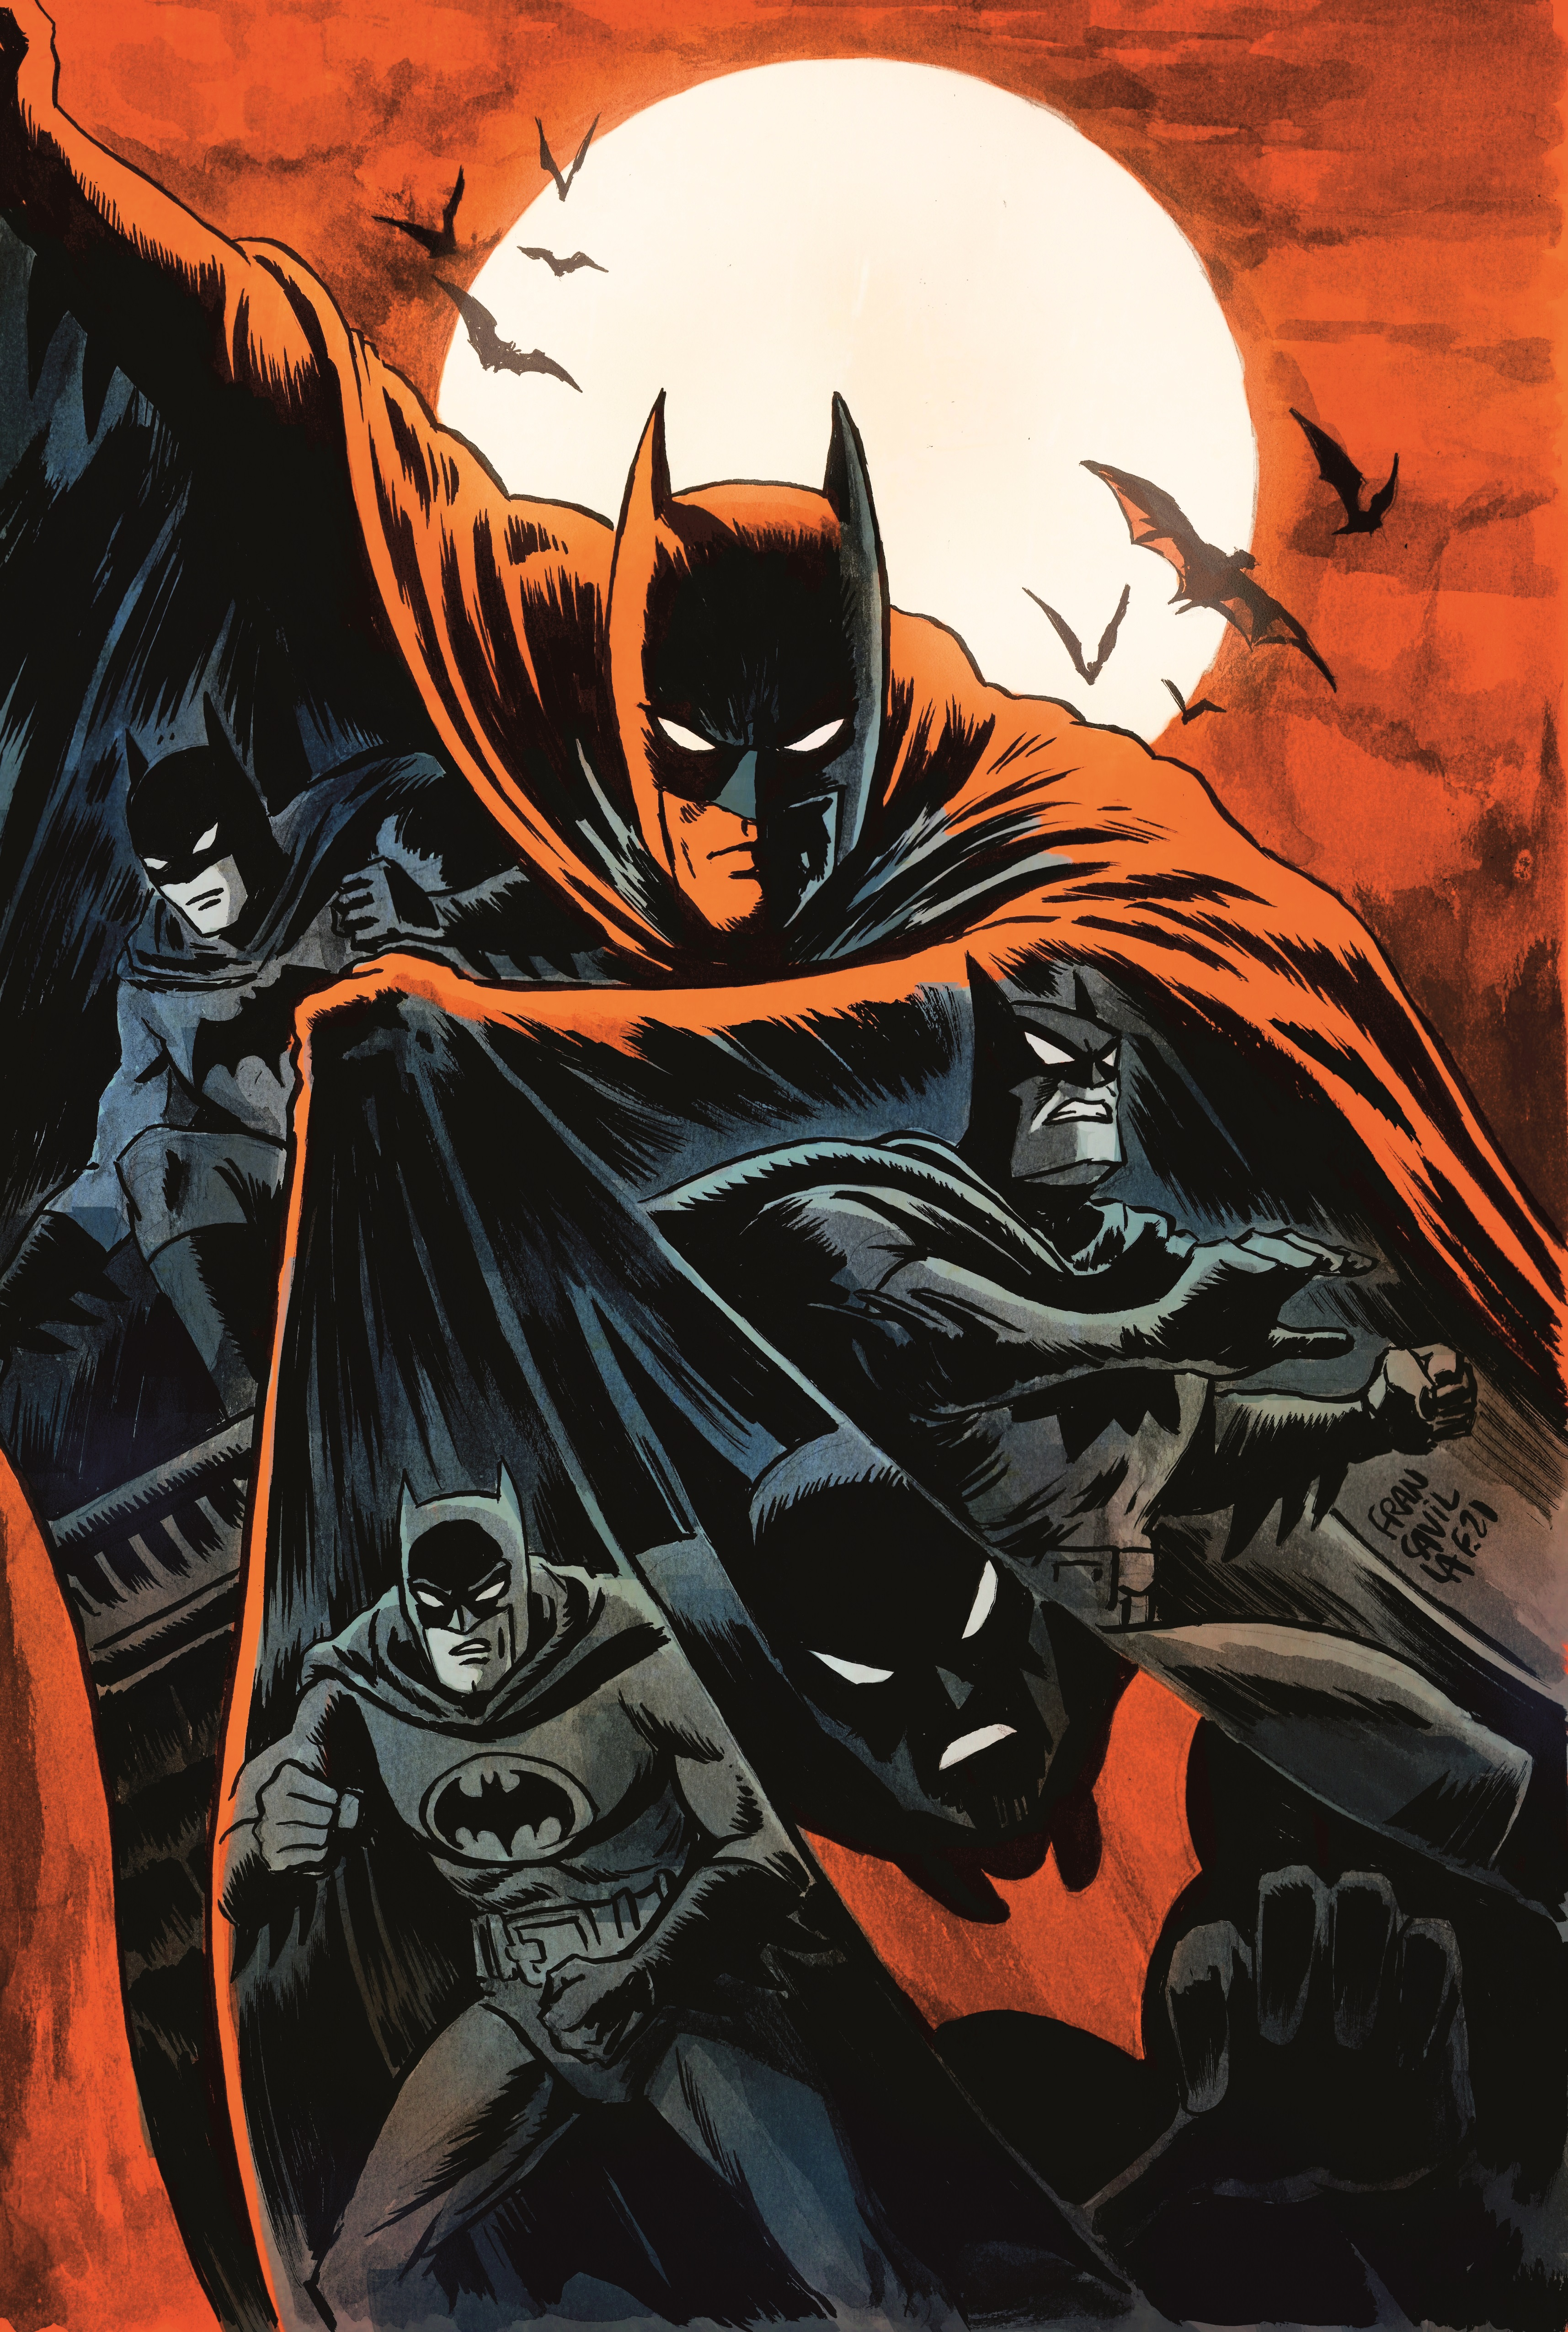 Legends of the Dark Knight #1 Francesco Francavilla 'Teams